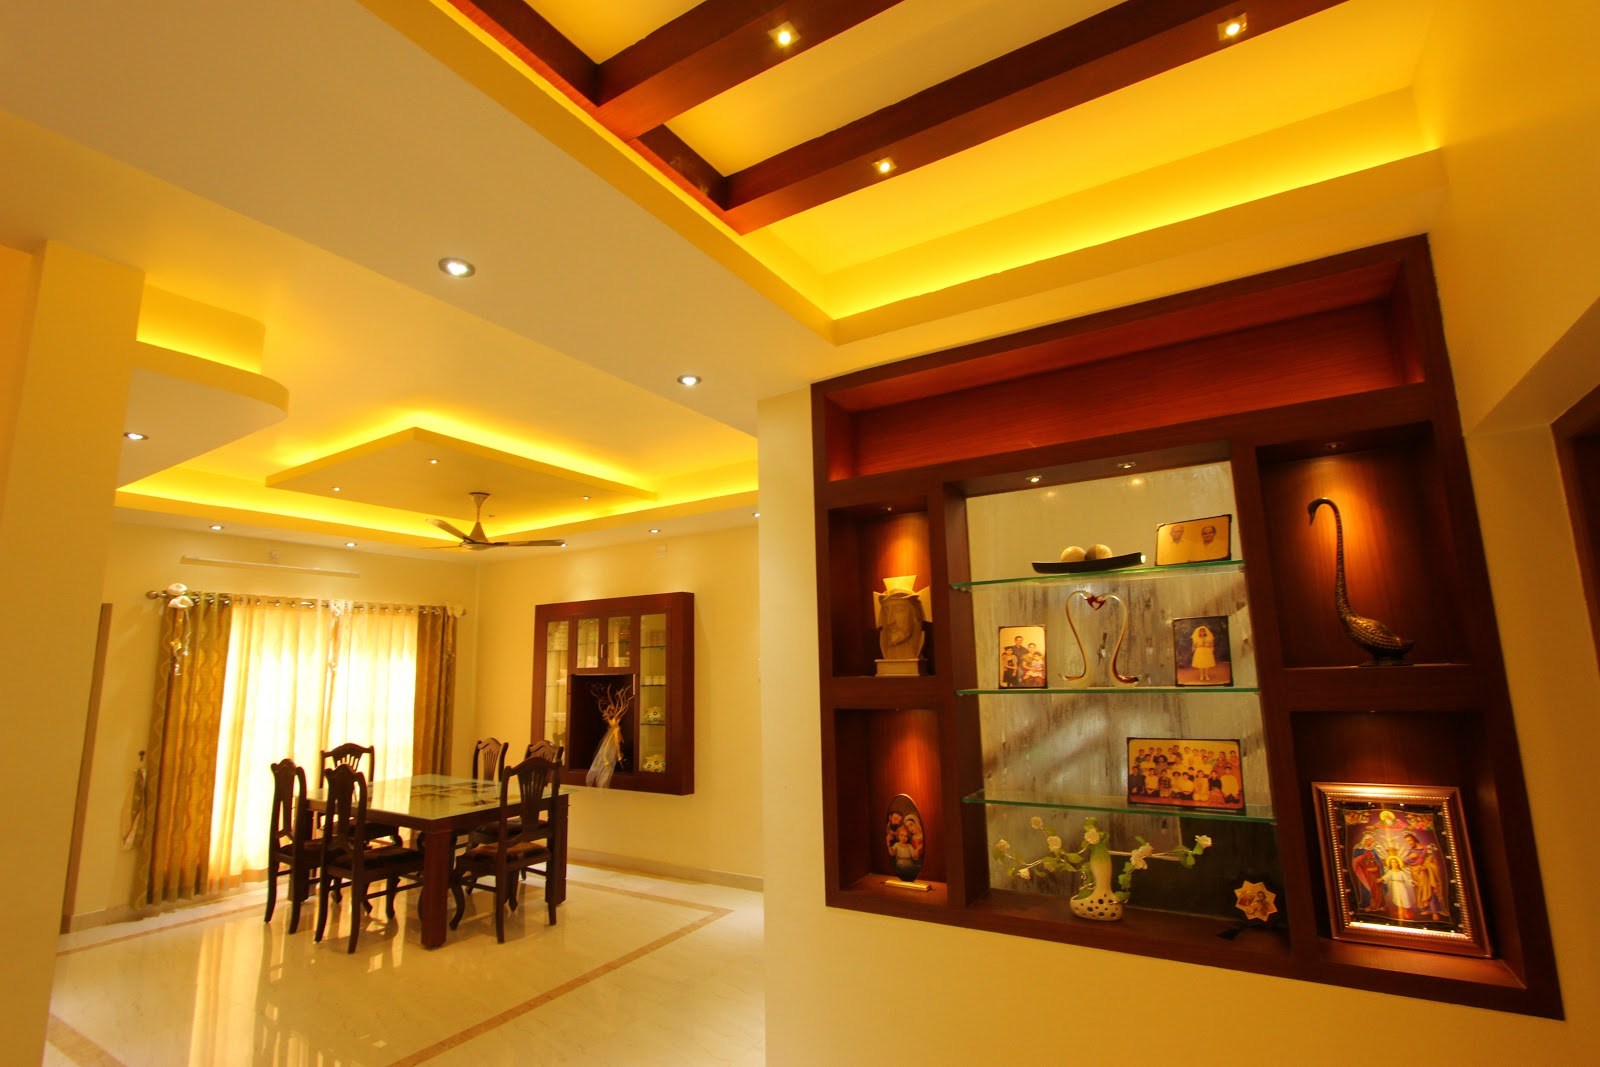 Shilpakala interiors award winning home interior design by shilpakala interiors Interior design ideas for kerala houses